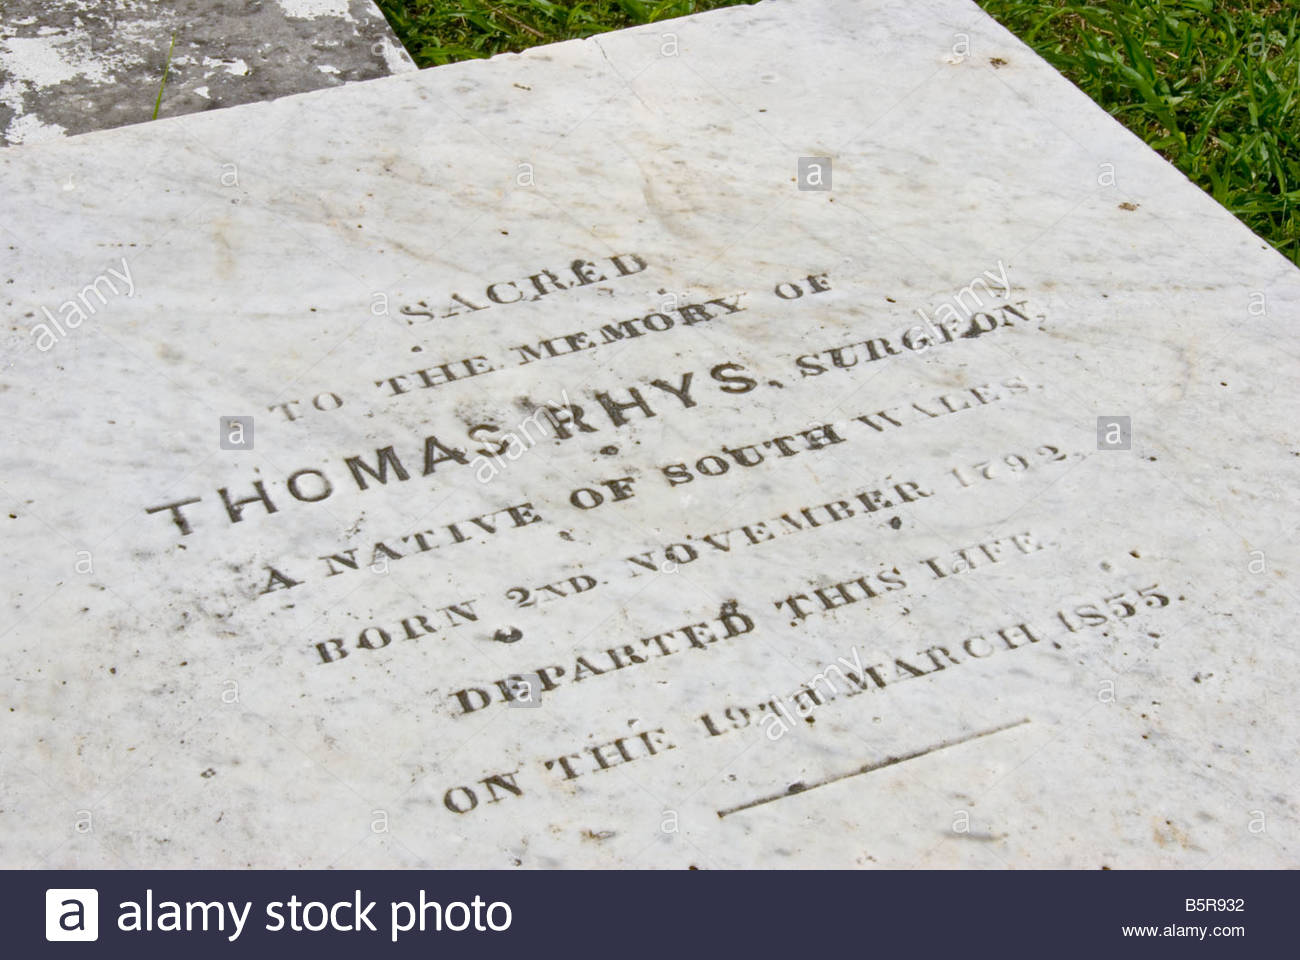 Yarborough Cemetery Belize City, headstone Yarborough Cemetery Belize City first public cemetery in ...